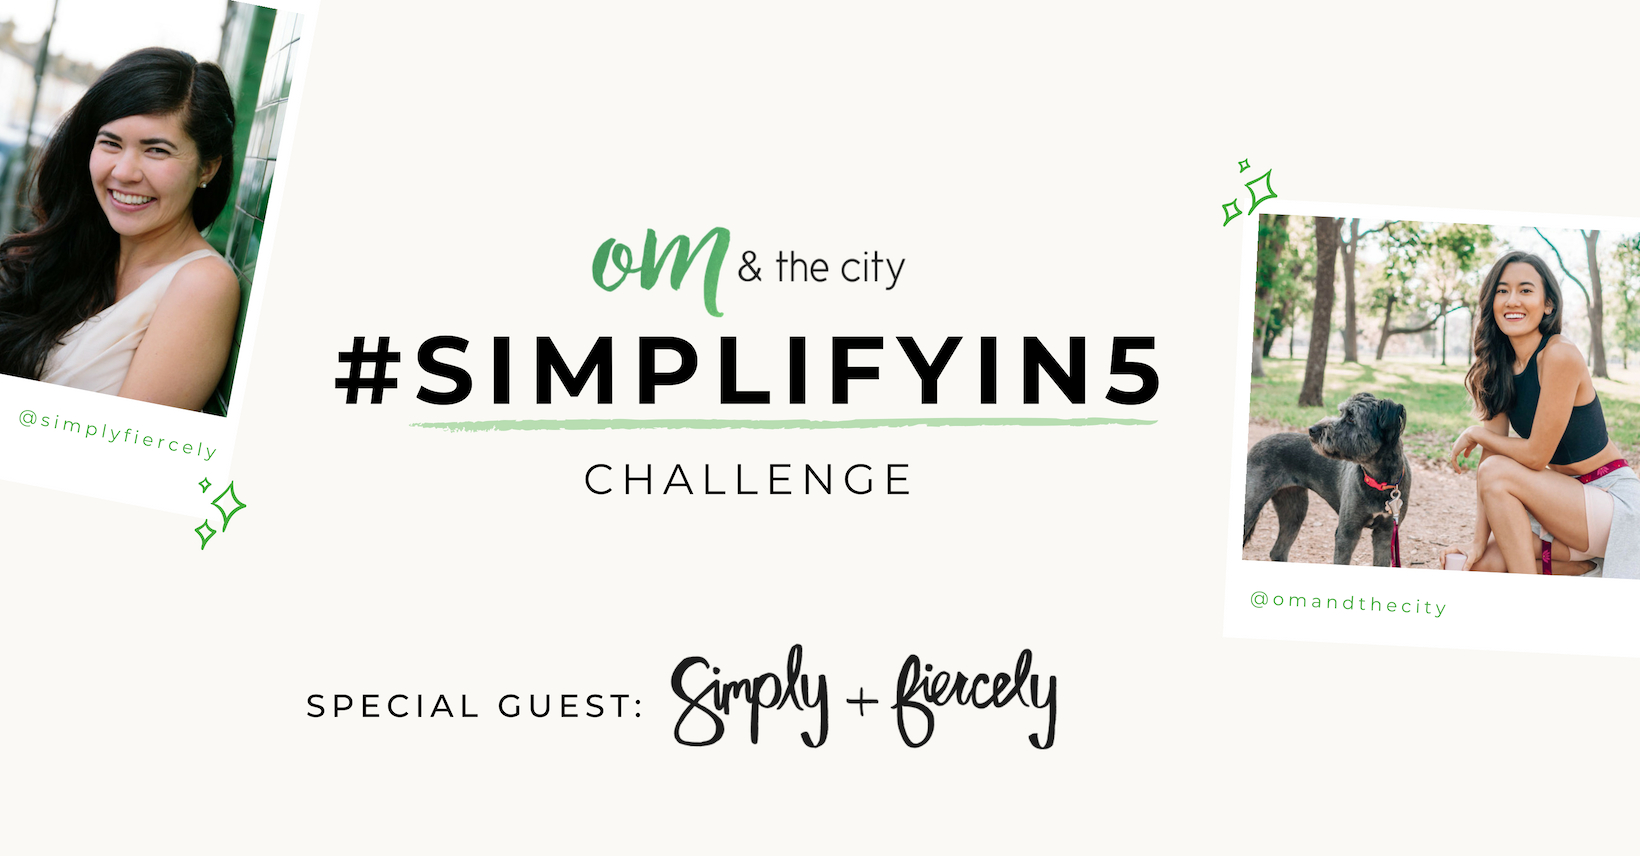 simplify in 5 challenge